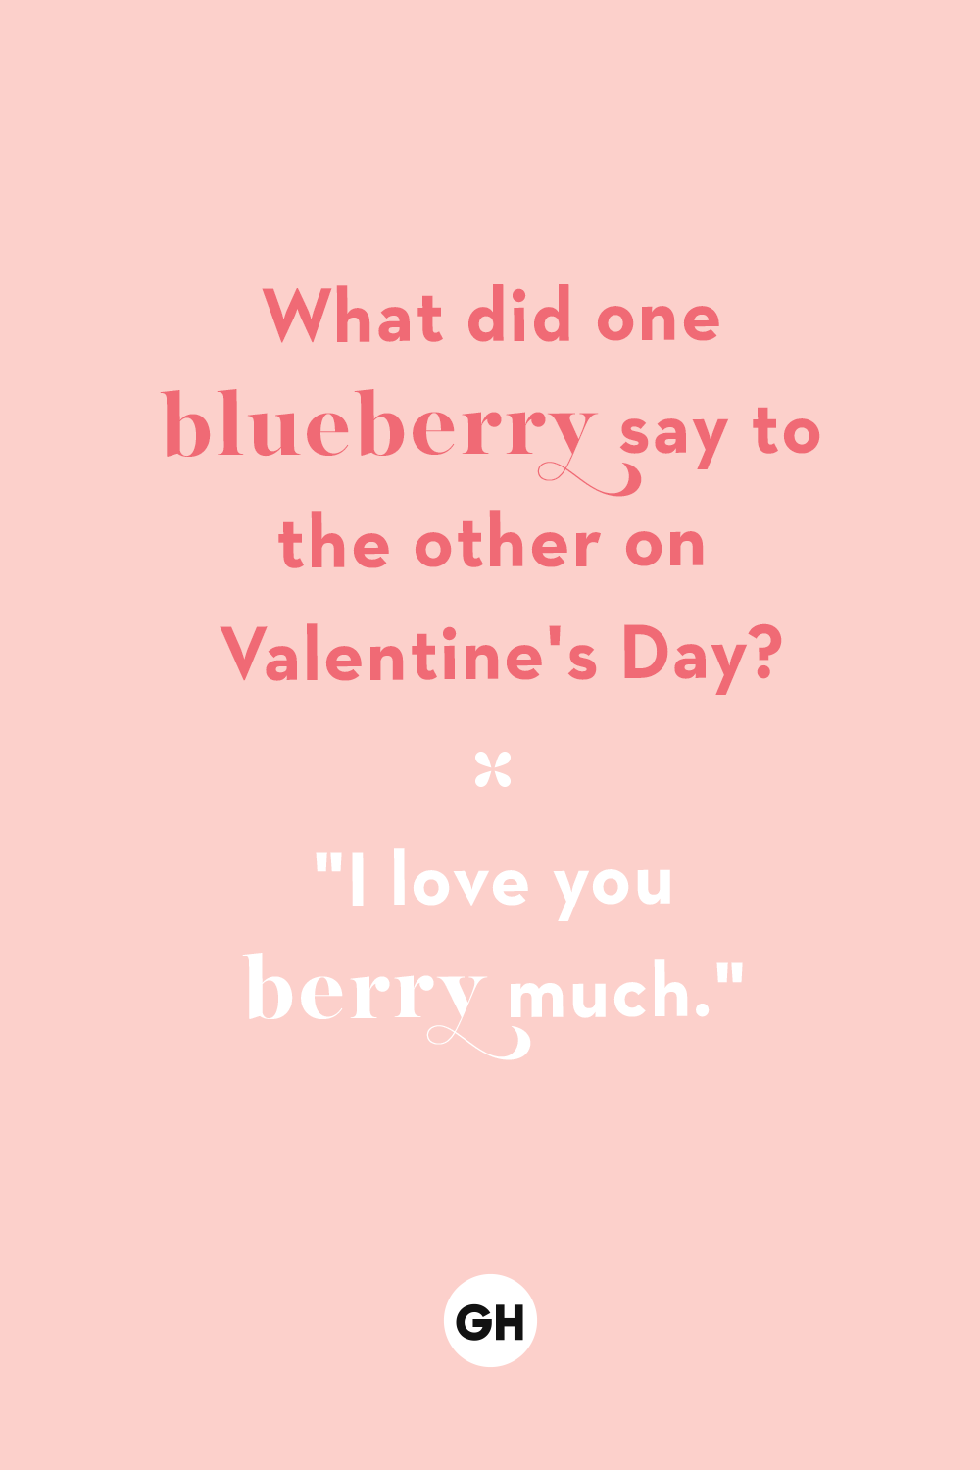 35 Cute Valentine Jokes to Spread the Love (and Laughter)